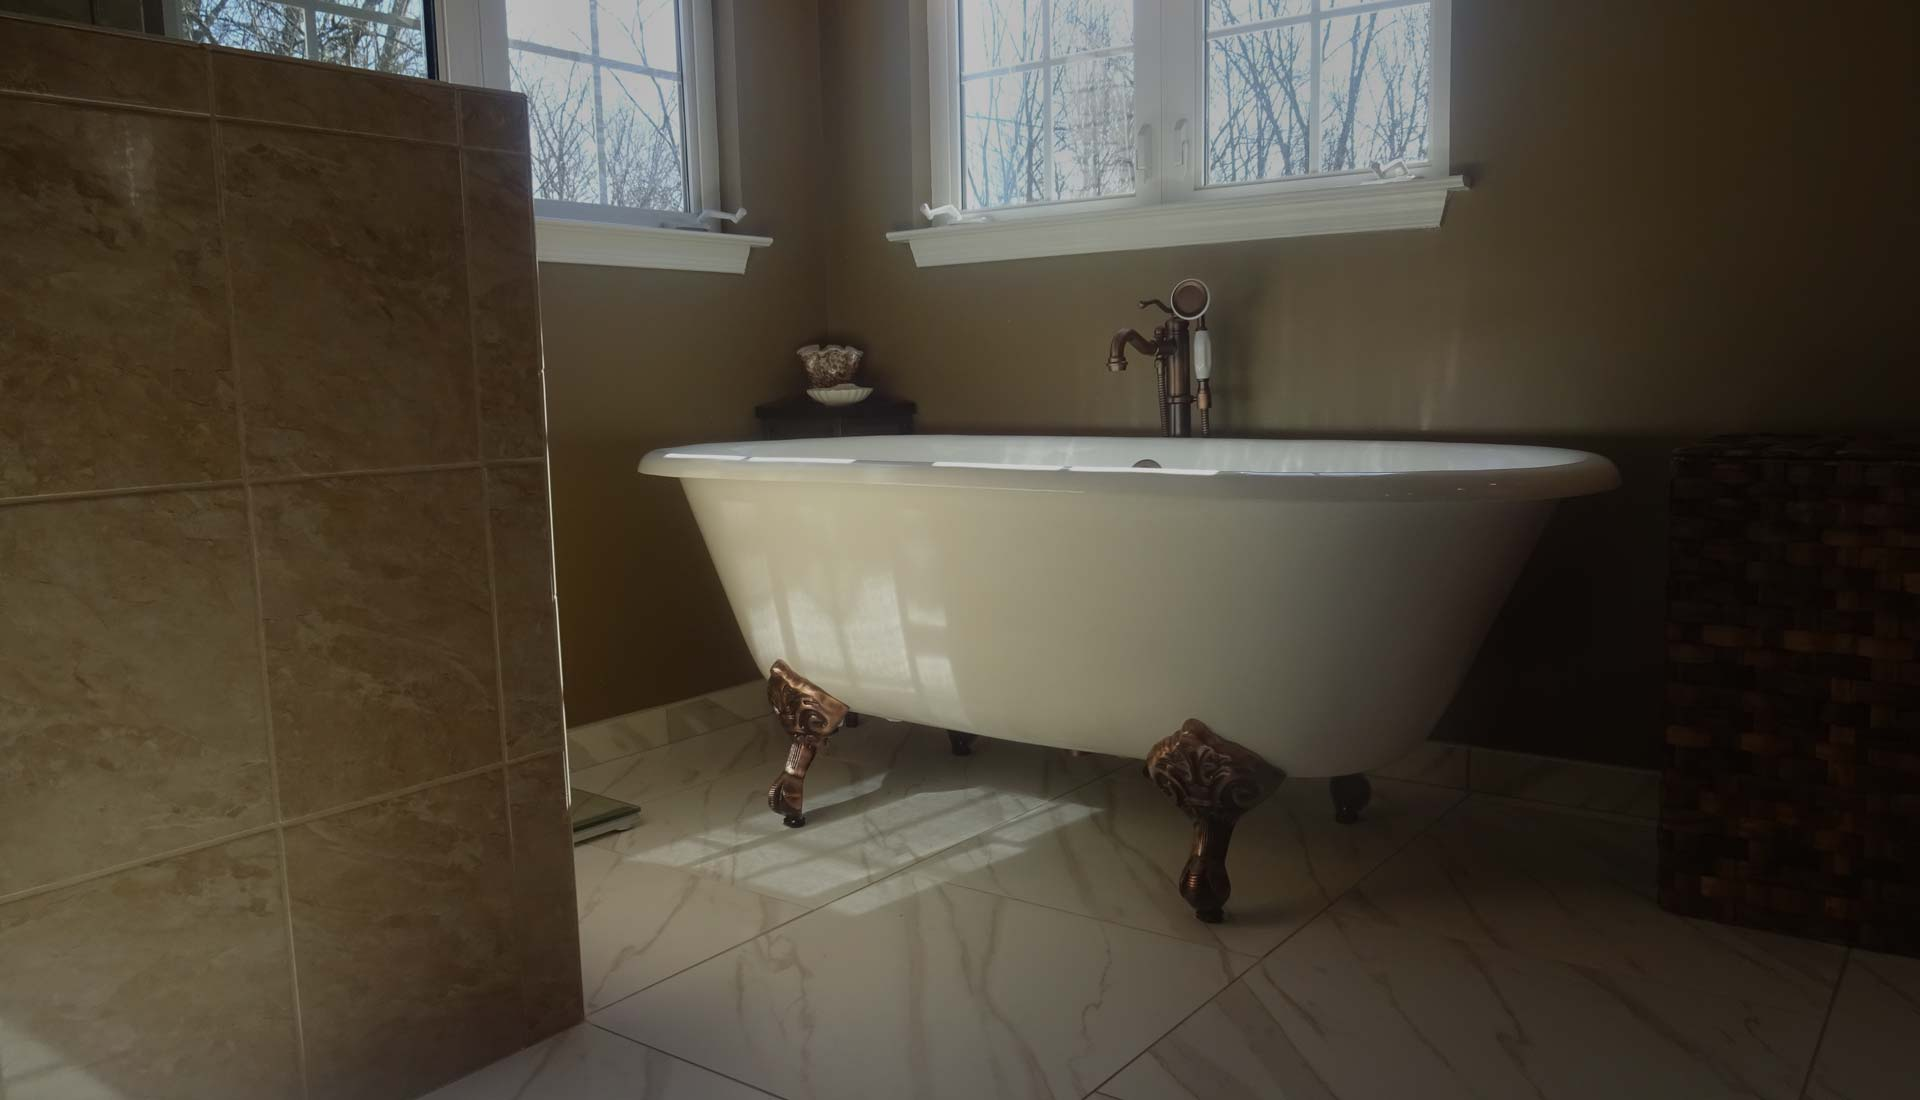 bathroom remodeling ny hawaii dandy wi insight wraps images remodel ideas bath rochester madison most cincinnati